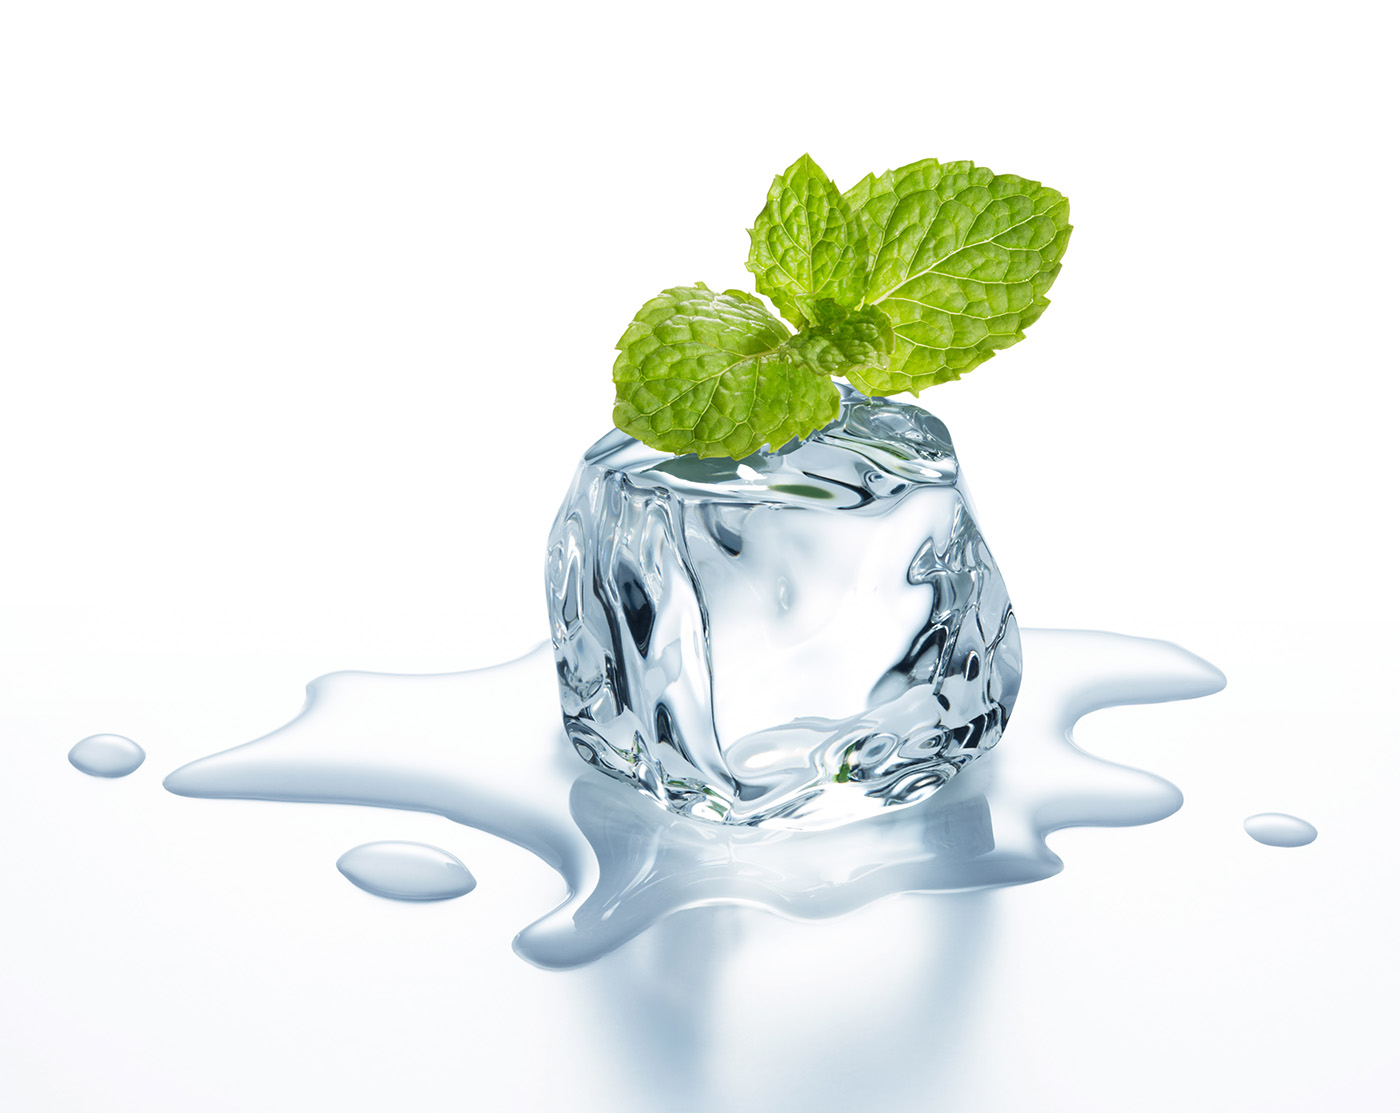 Melting ice and mint leaves 50212